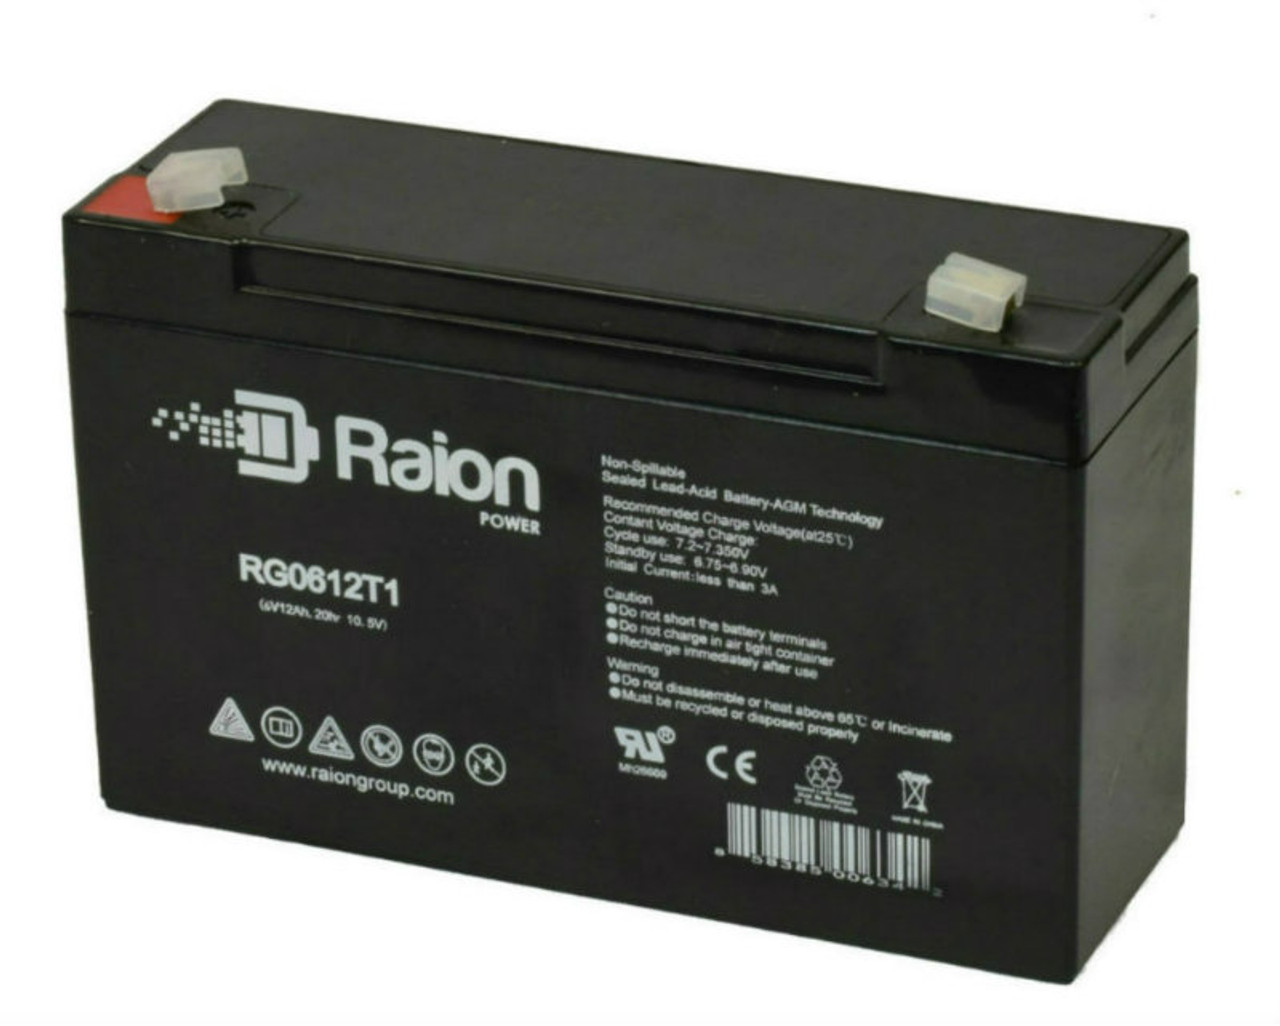 Raion Power RG06120T1 Replacement Battery Pack for Teledyne H2SE12S7 emergency light